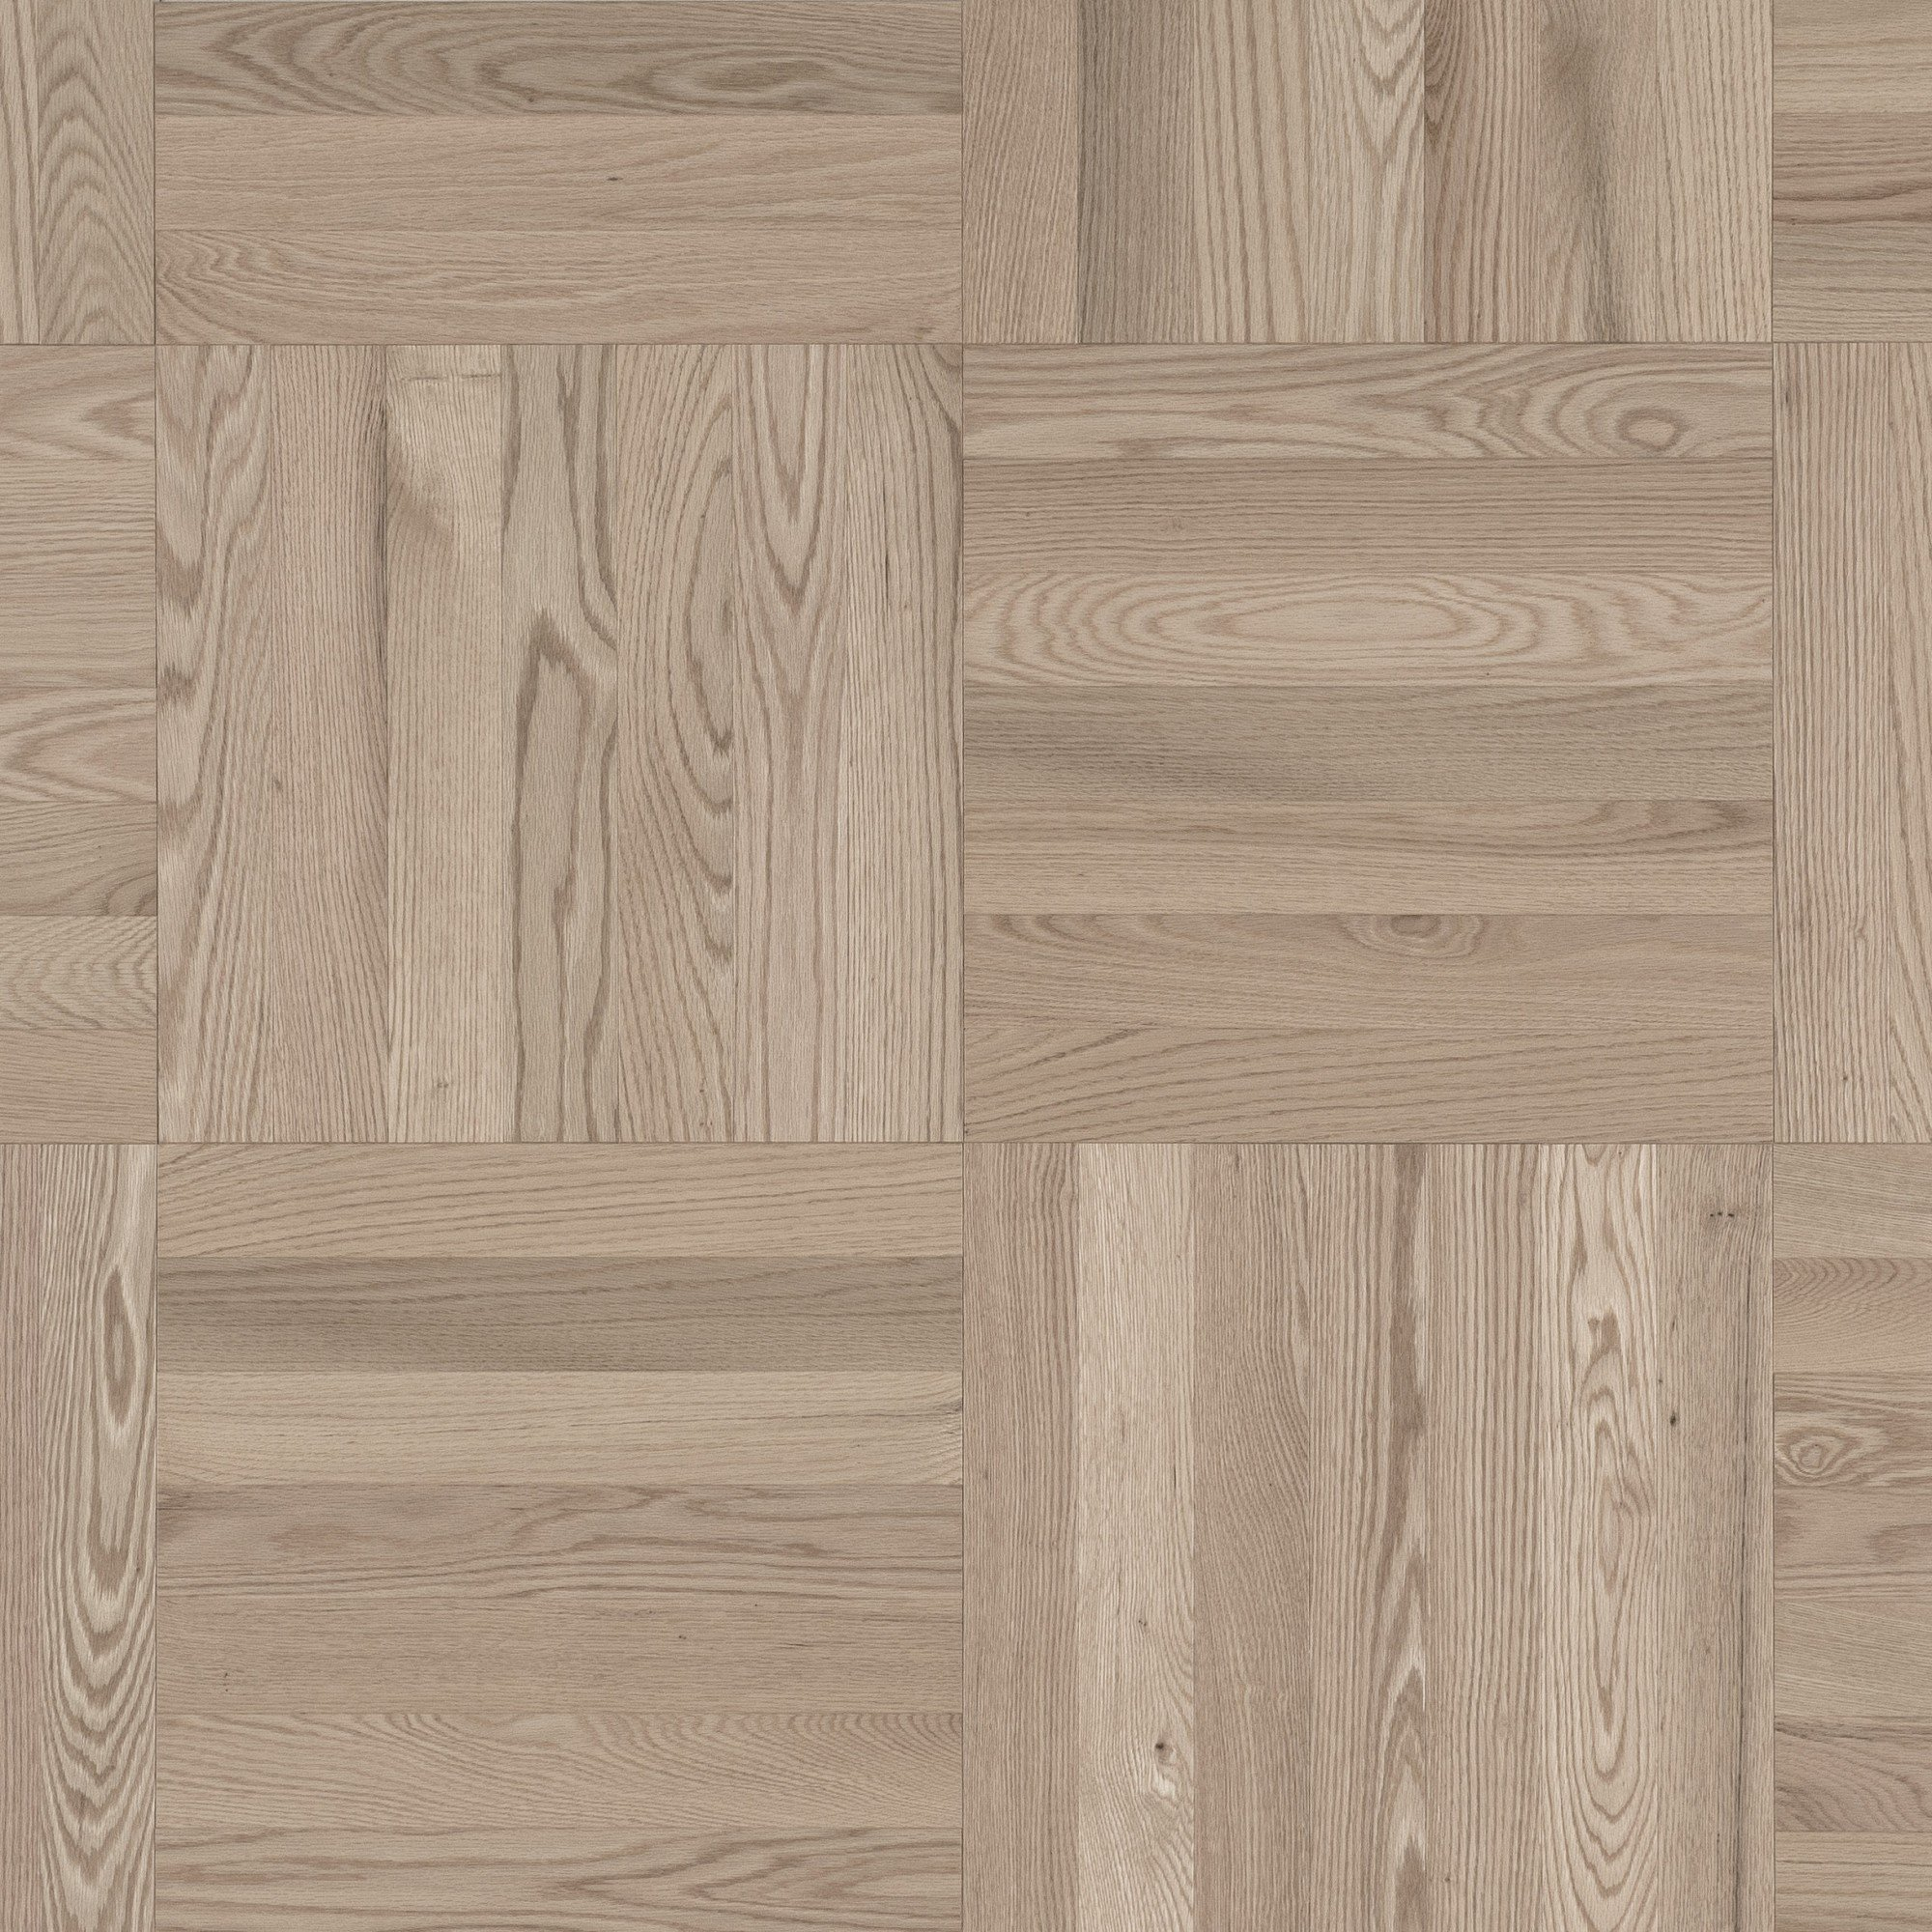 Herringbone red oak rio mirage hardwood floors for Mirage wood floors